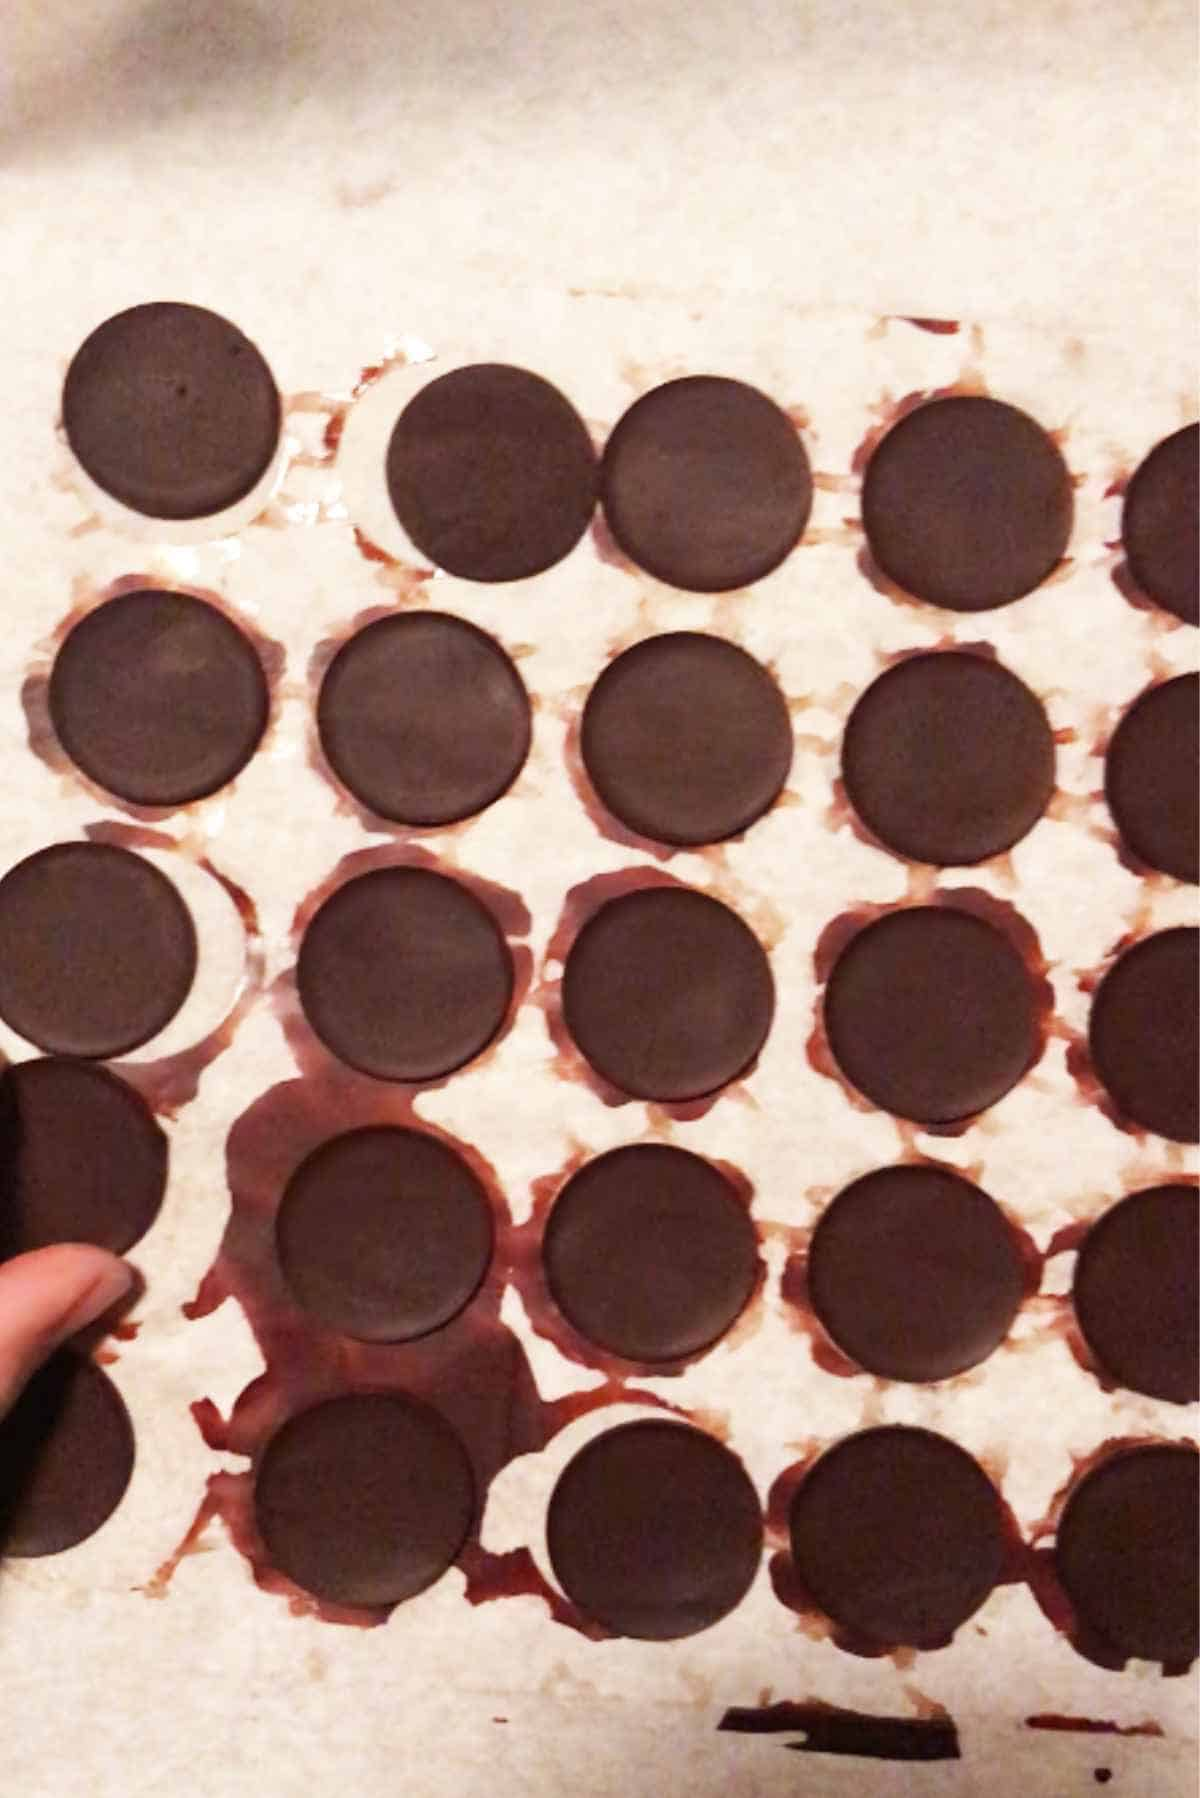 Discs of chocolate on parchment.